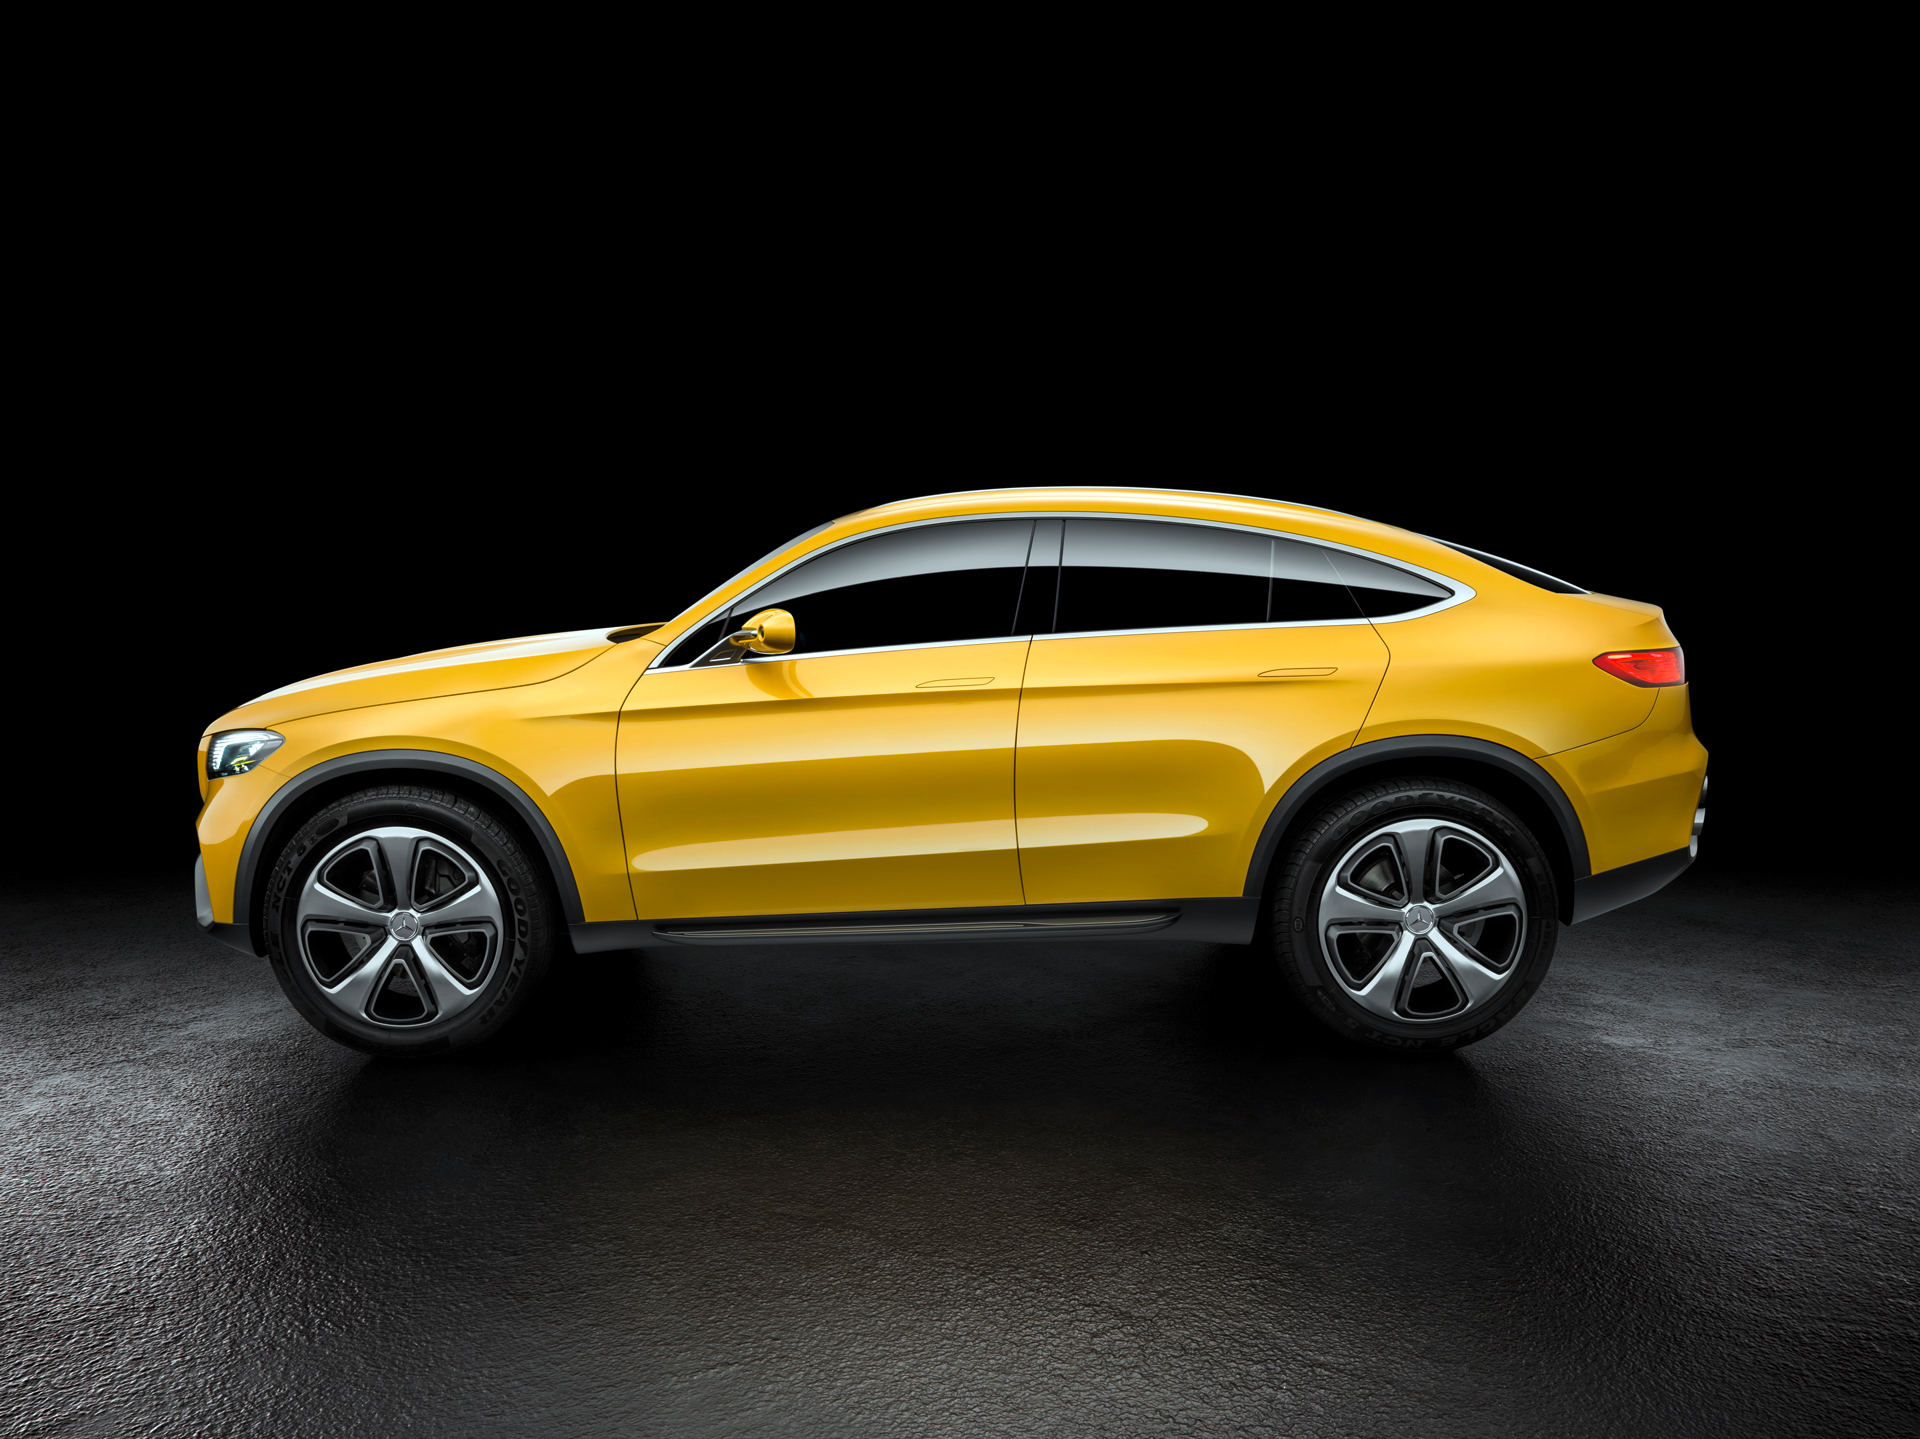 Mercedes-Benz Concept GLC Coupe - profil / side face